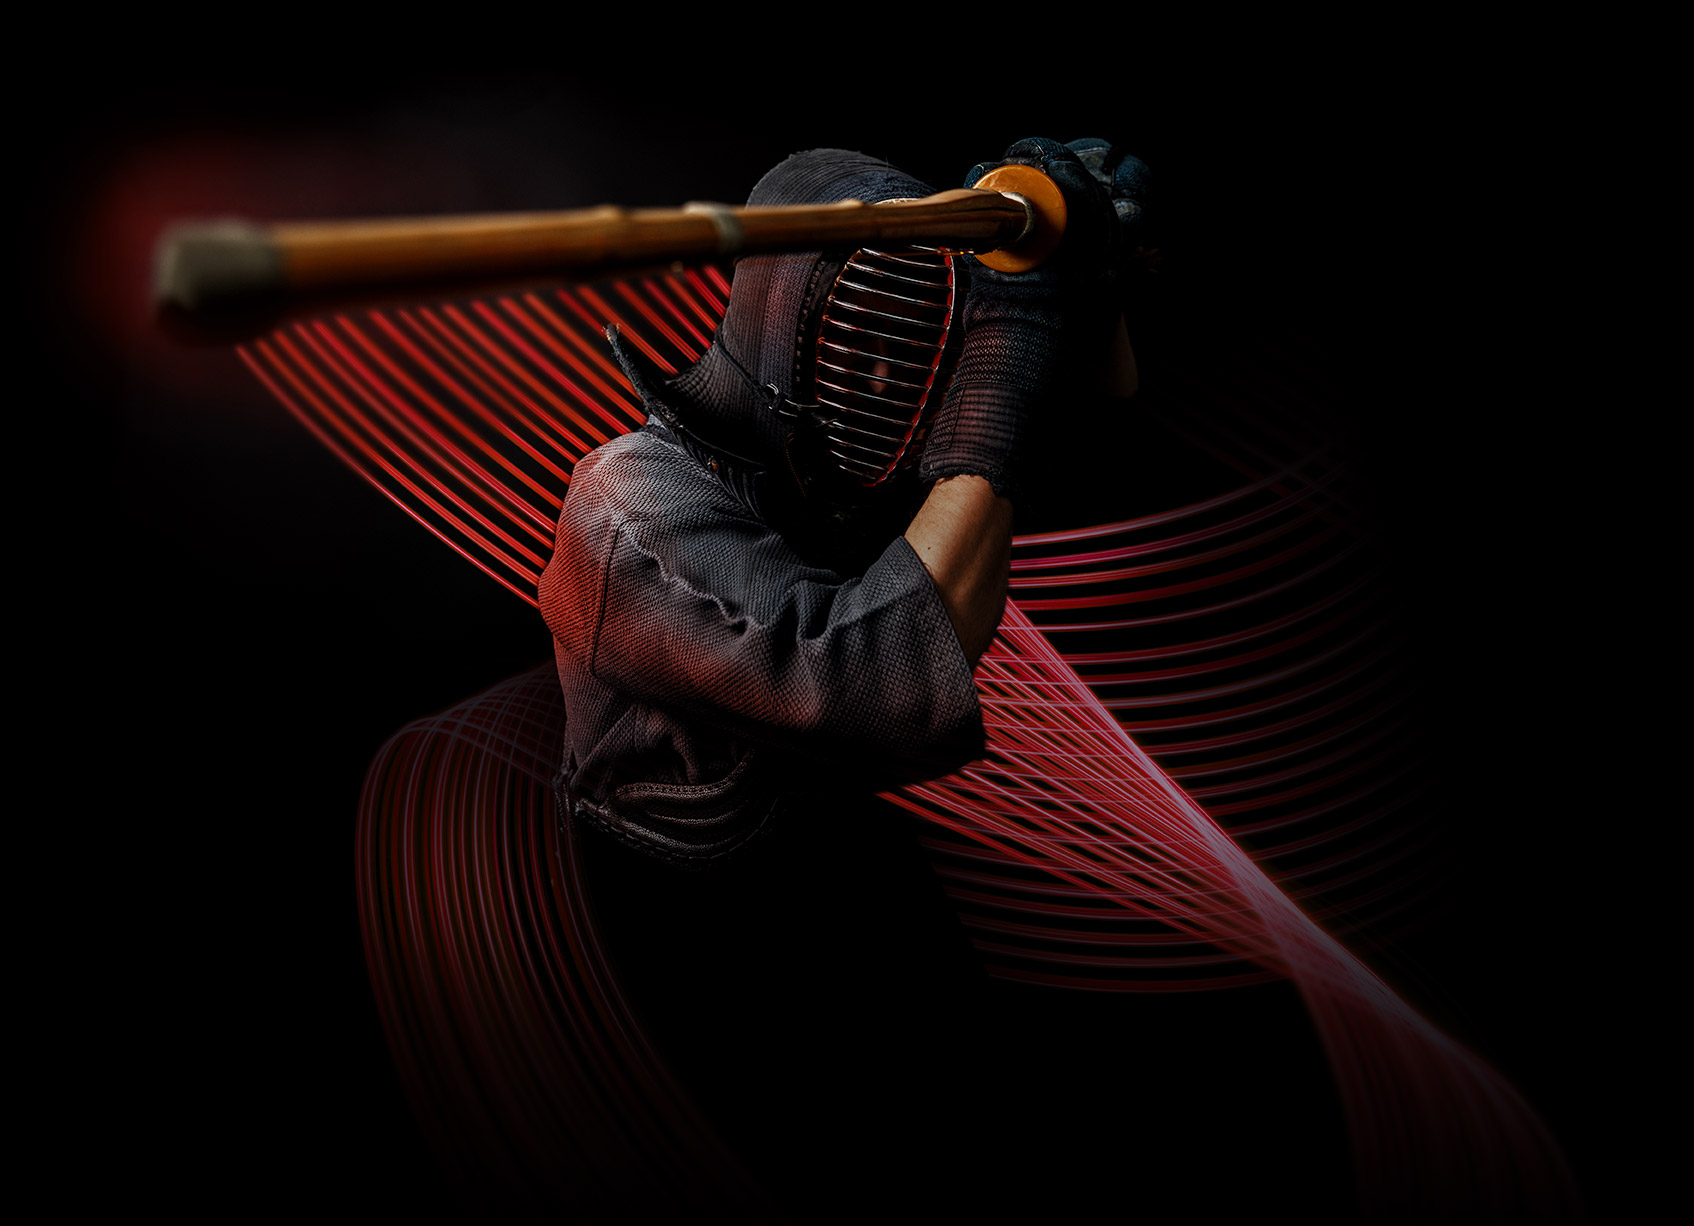 Image of a kenshi with his light sword